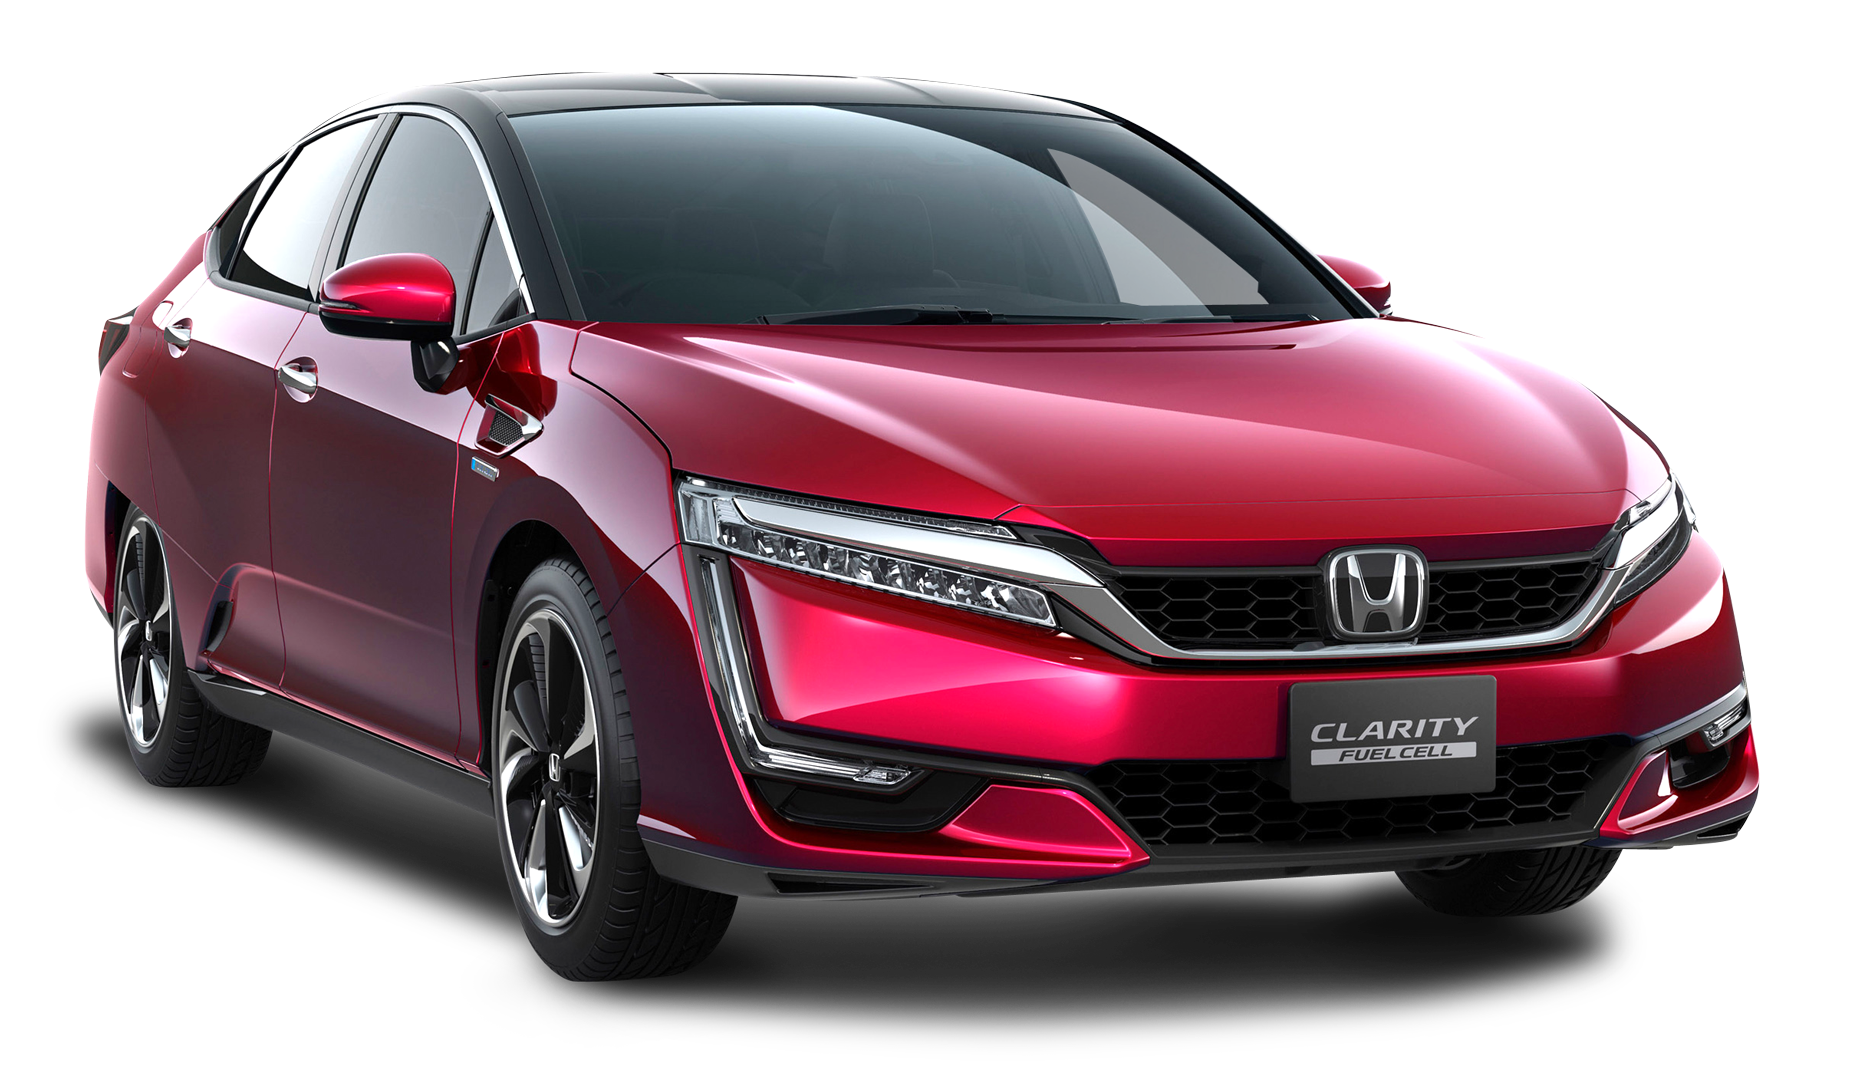 Red Honda Clarity Car PNG Image.